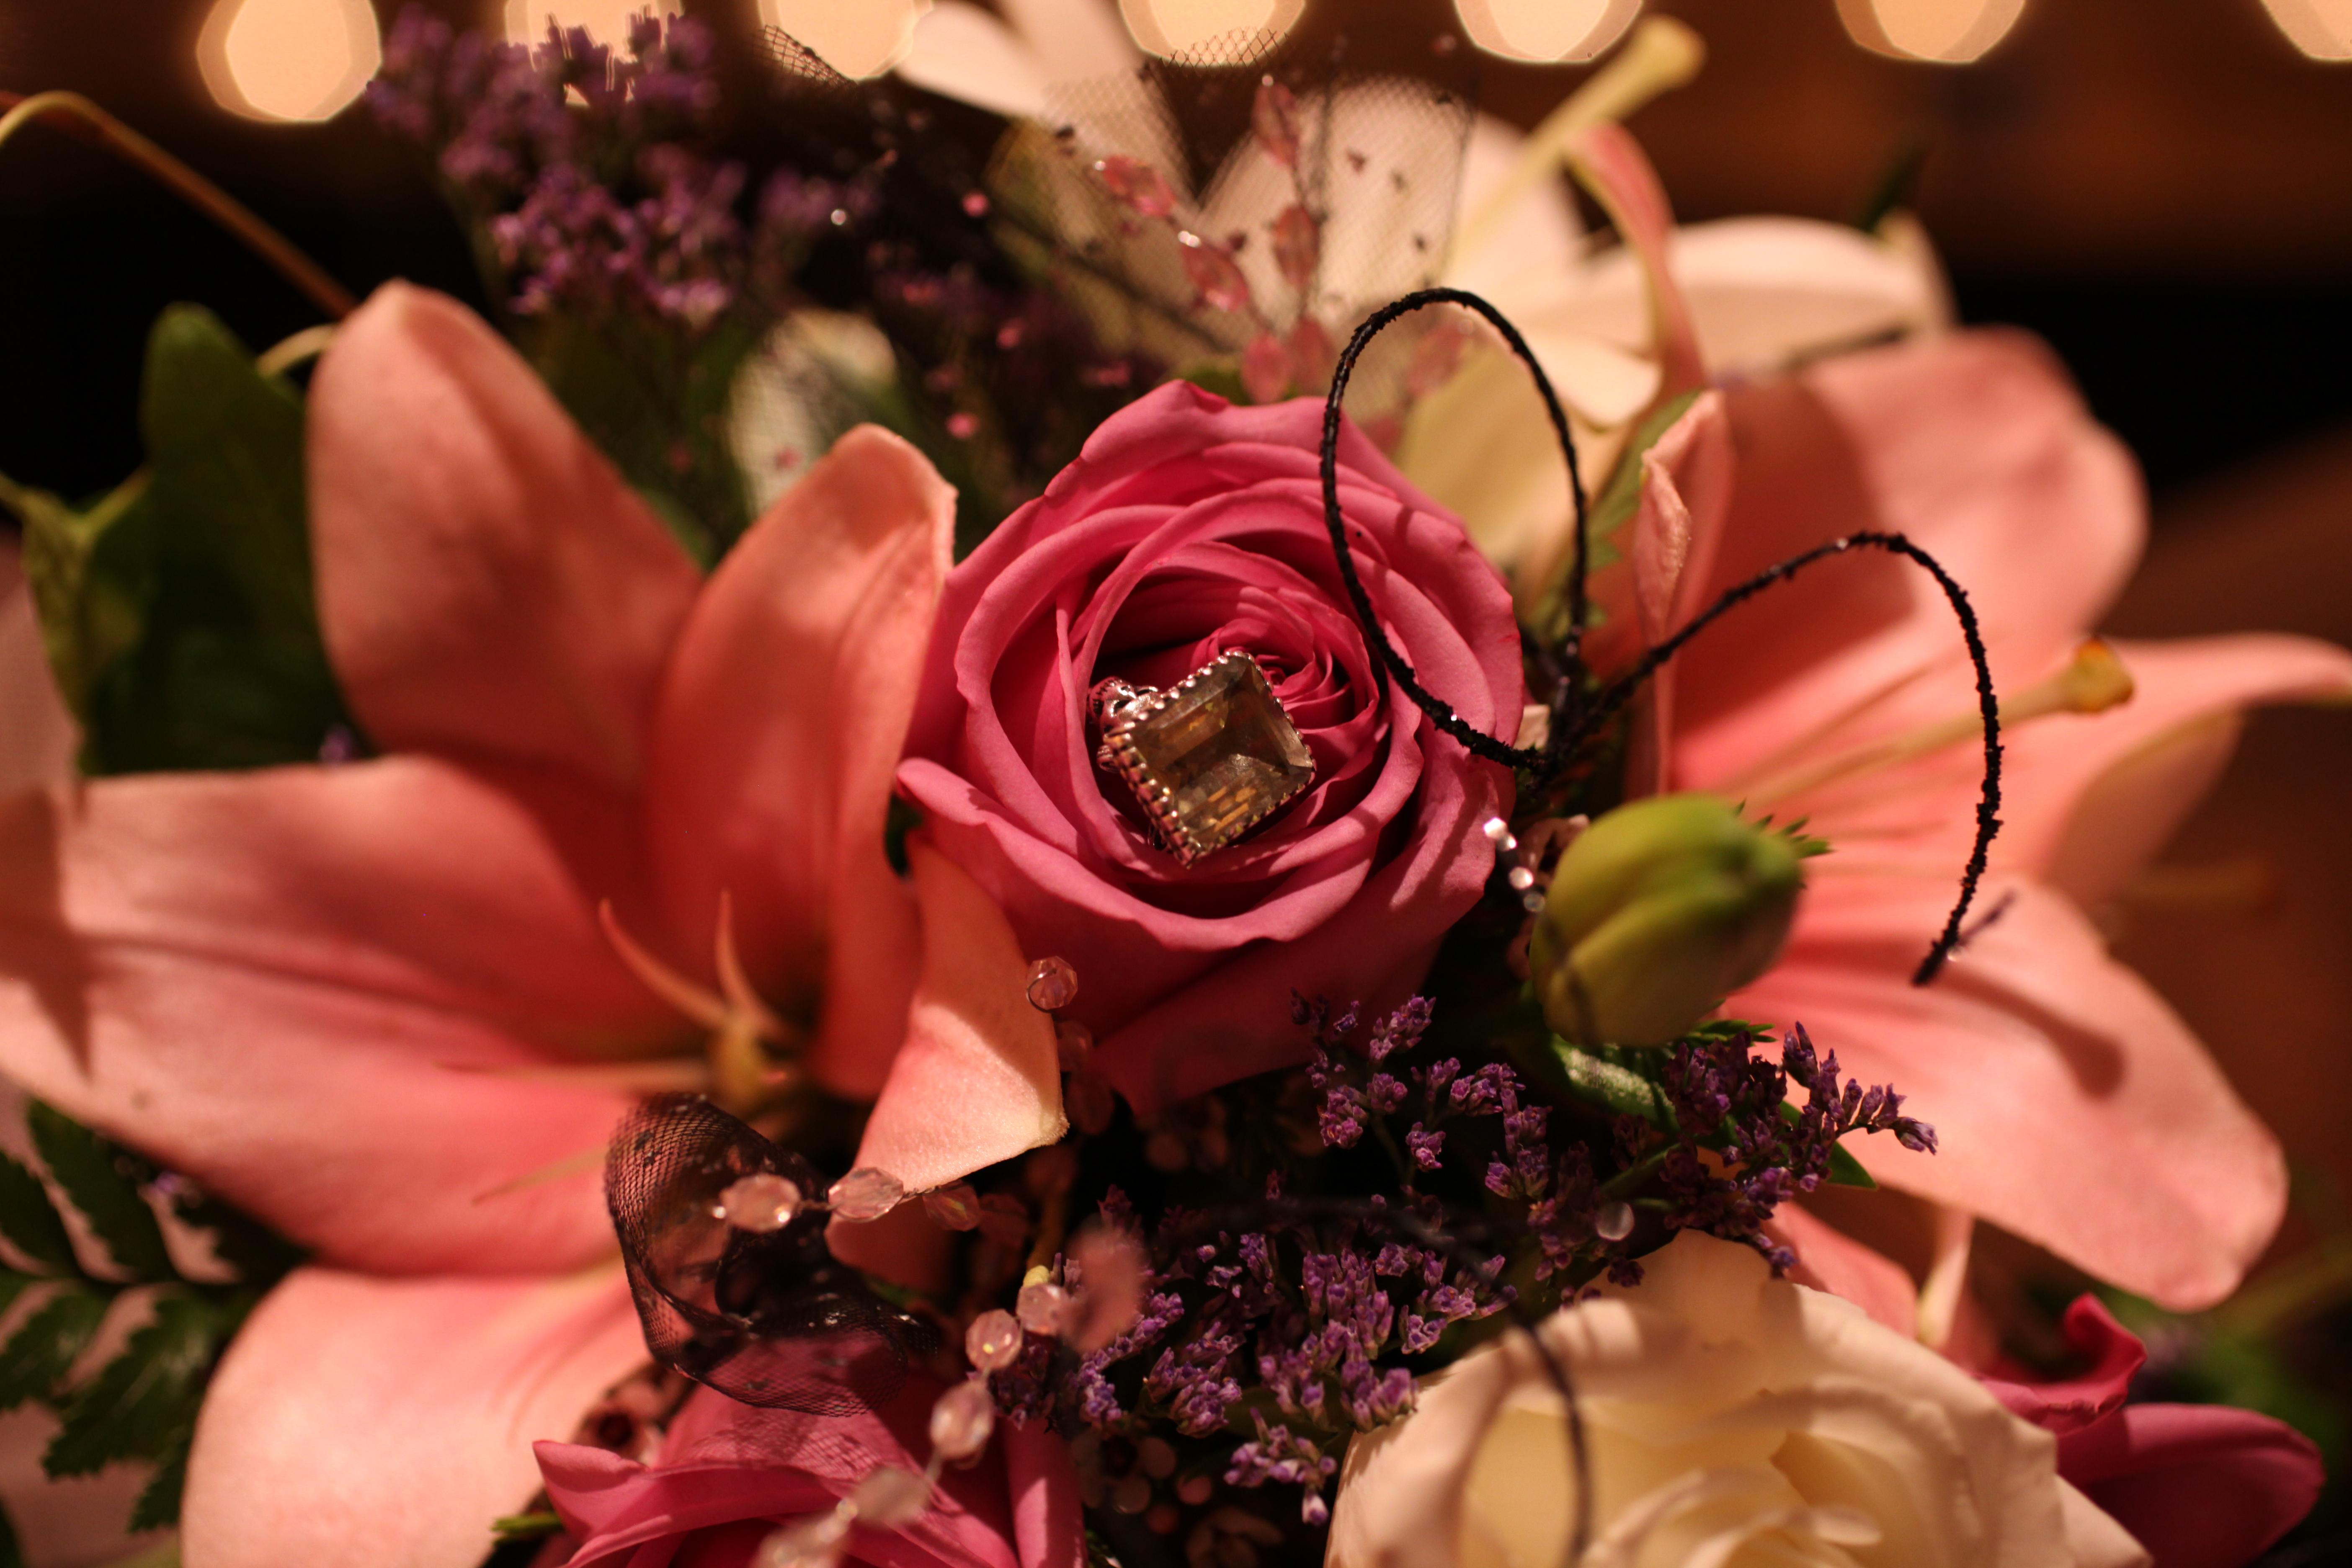 Emerald Ring in a Bouquet